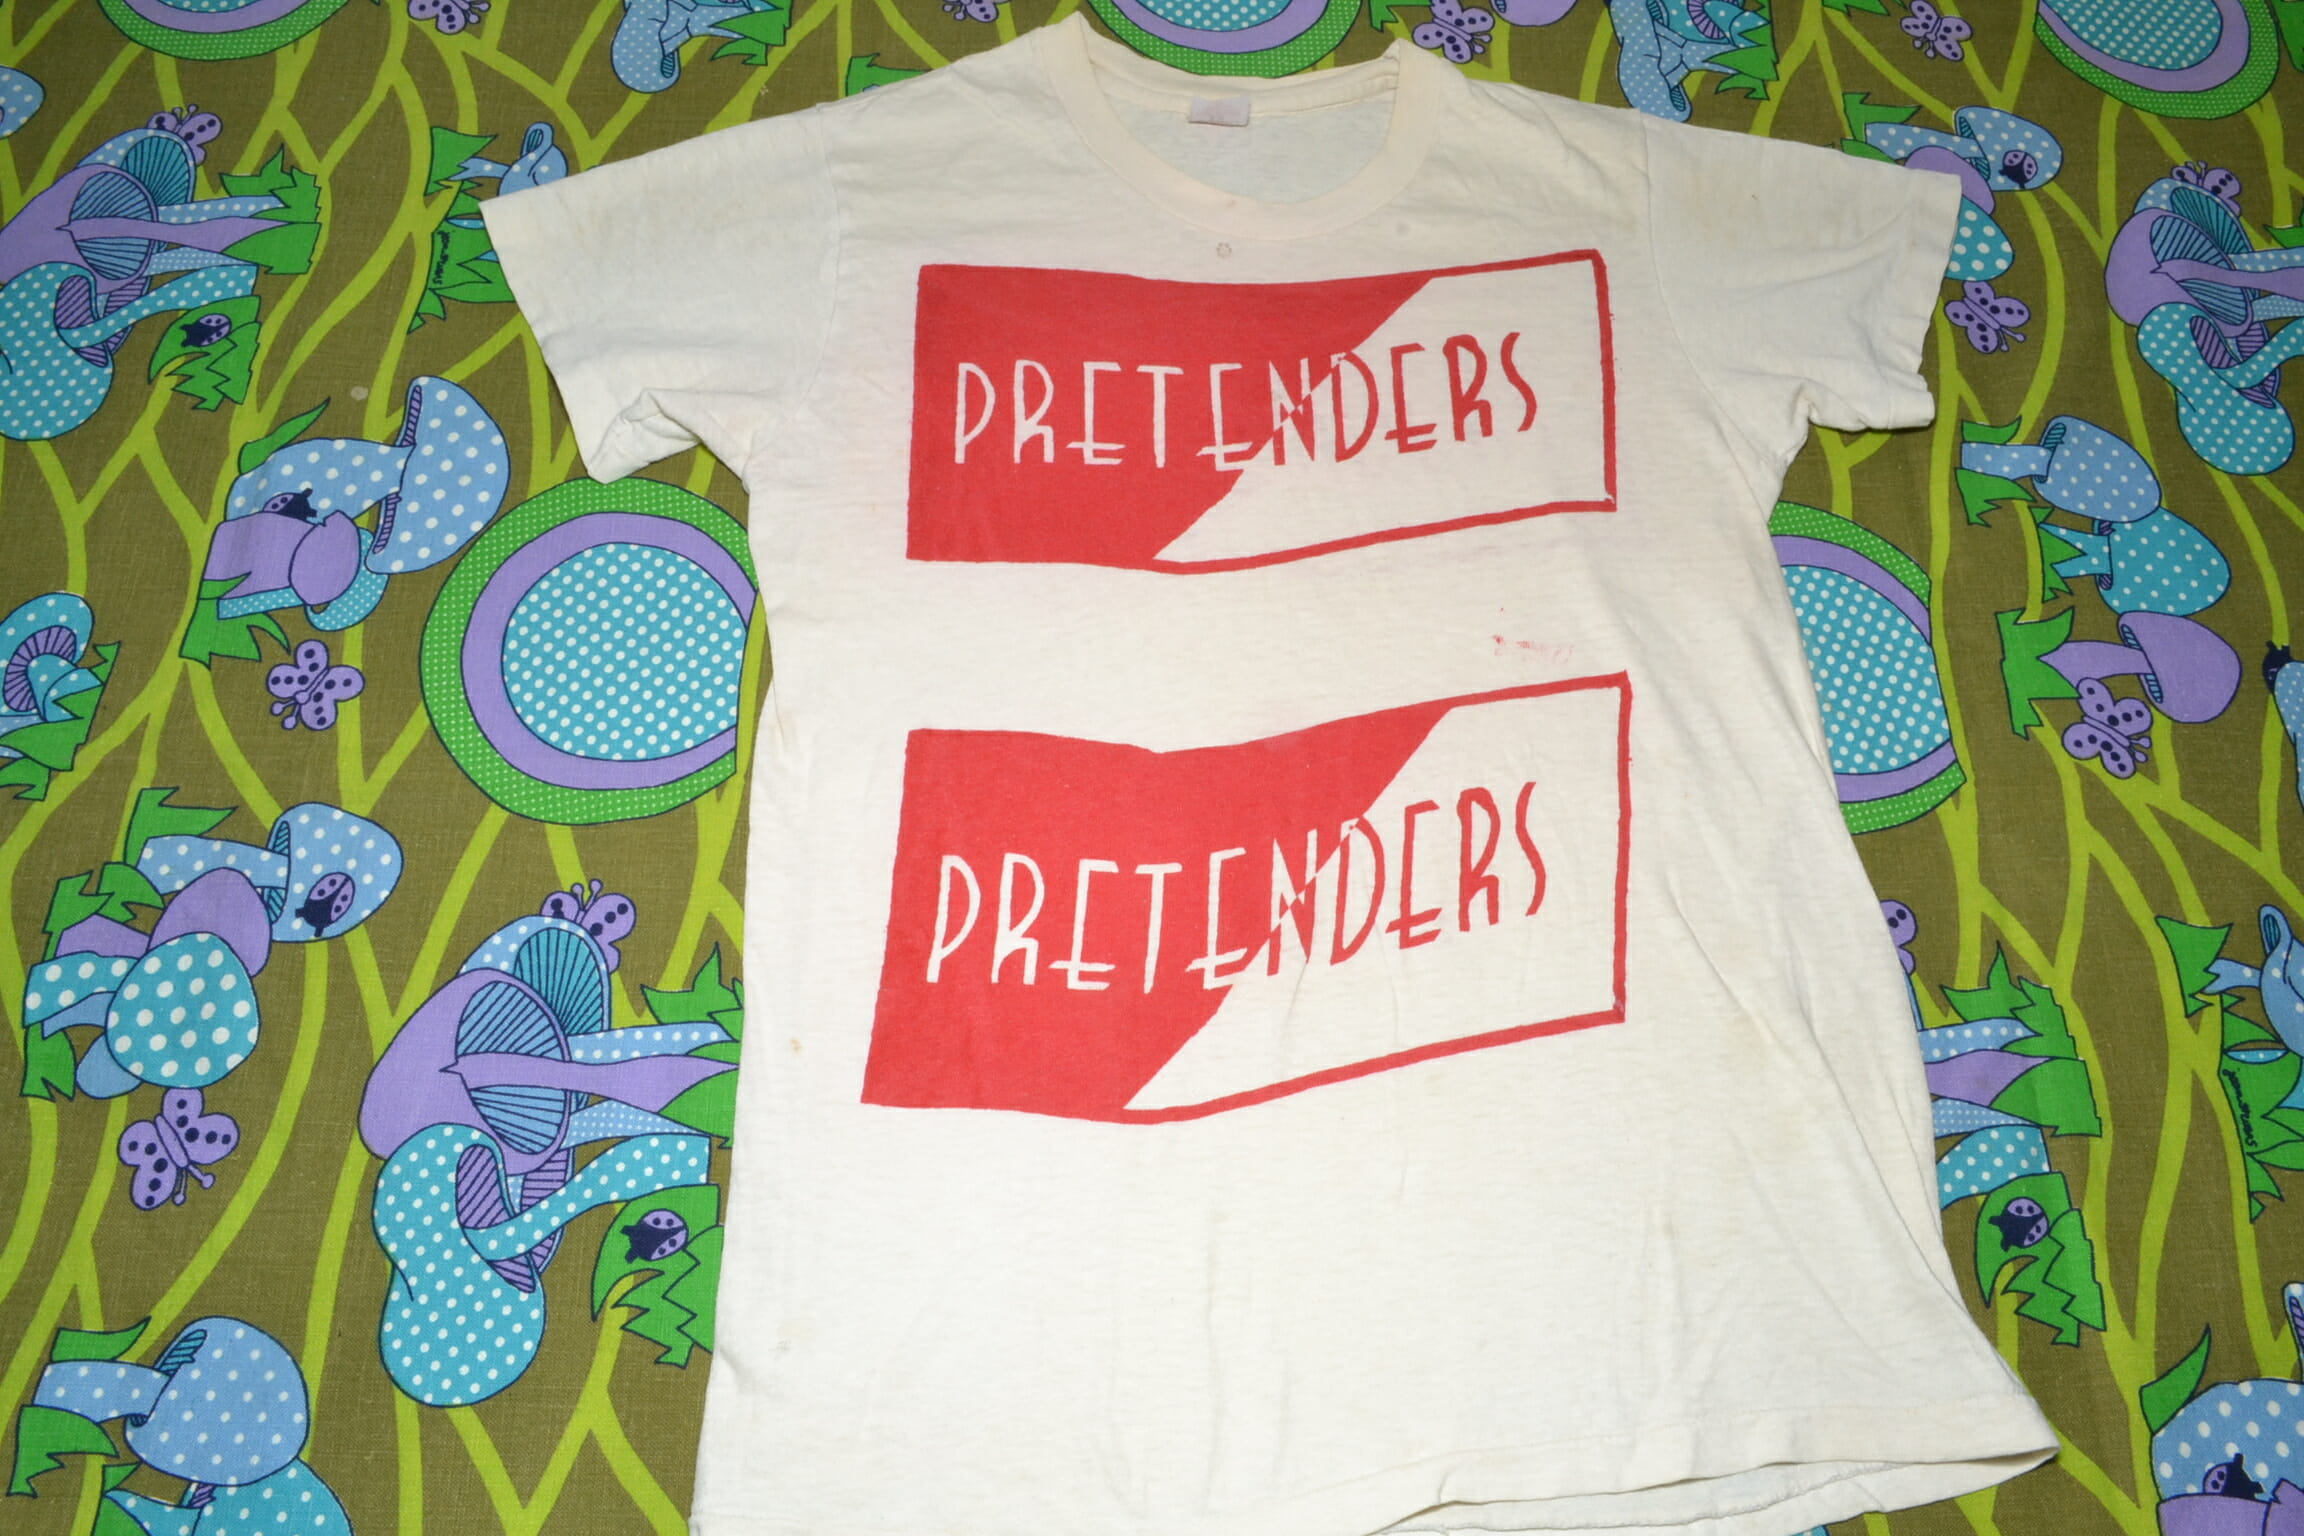 New punk rock tshirts on etsy metropolis vintage n y c for Best selling t shirts on etsy